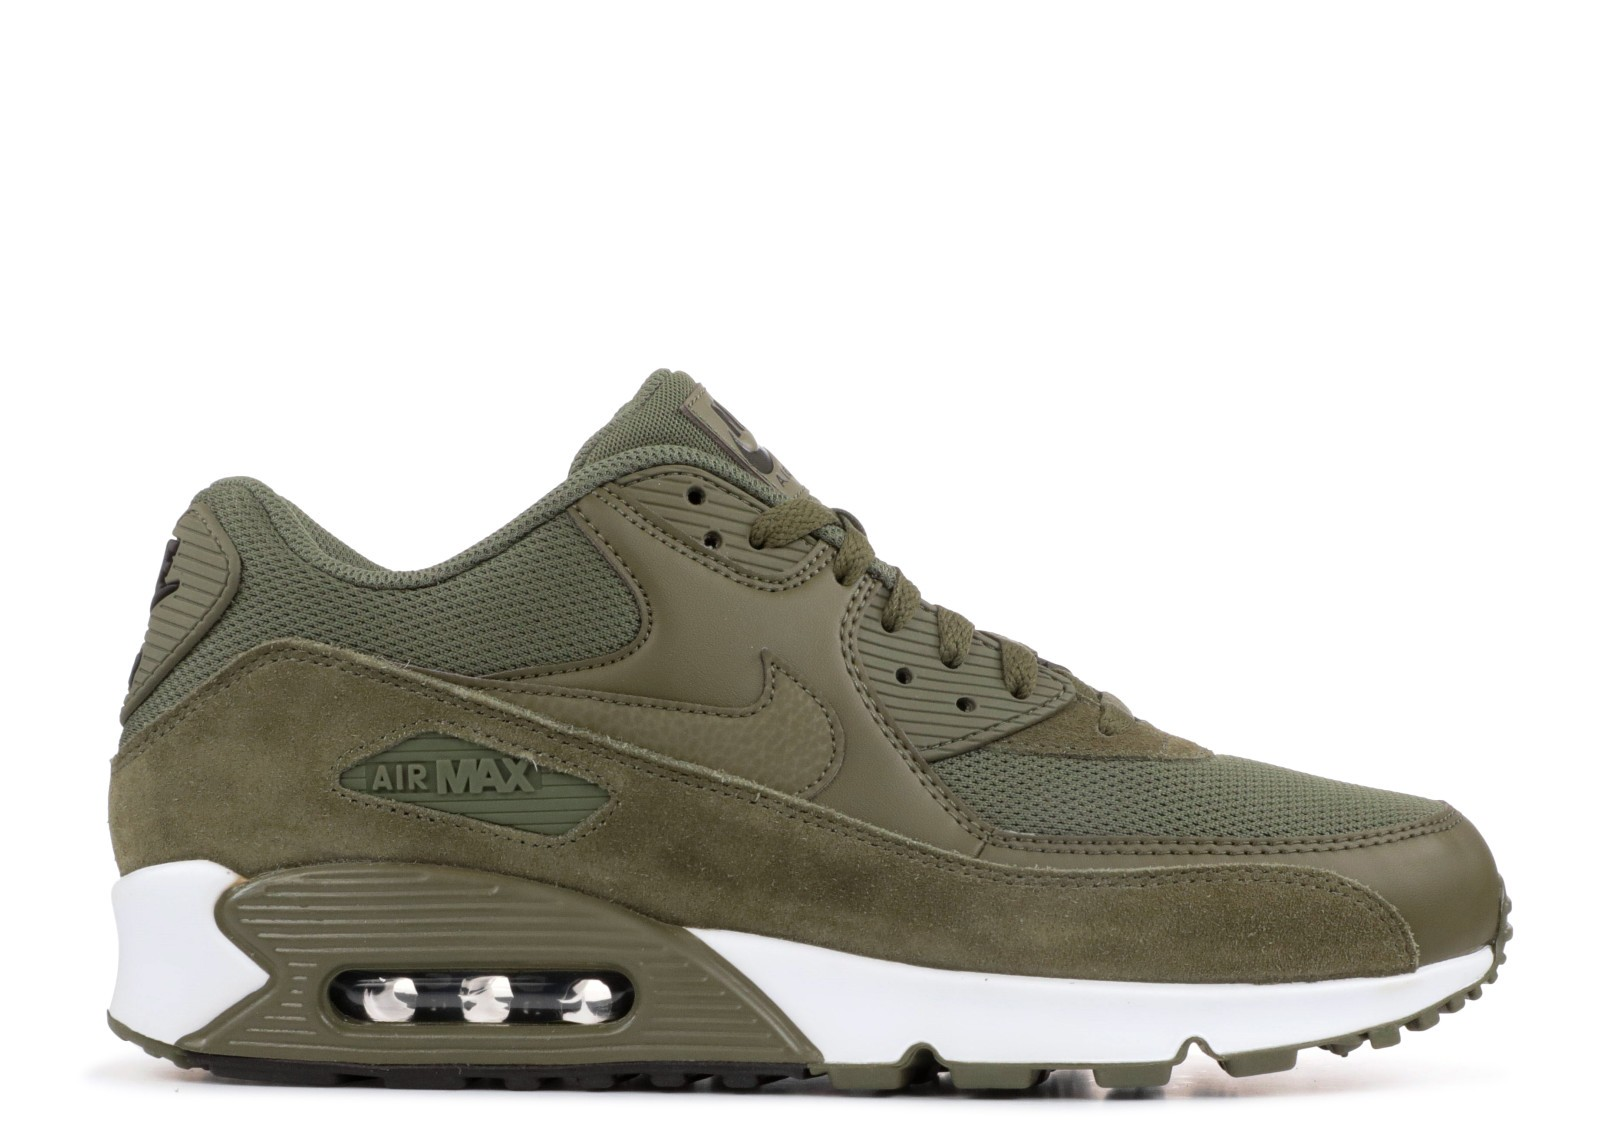 huge discount 0c2e3 2175e Prev Nike Air Max 90 Essential Olive Medium 537384-201. Zoom. Move your  mouse over image or click to enlarge